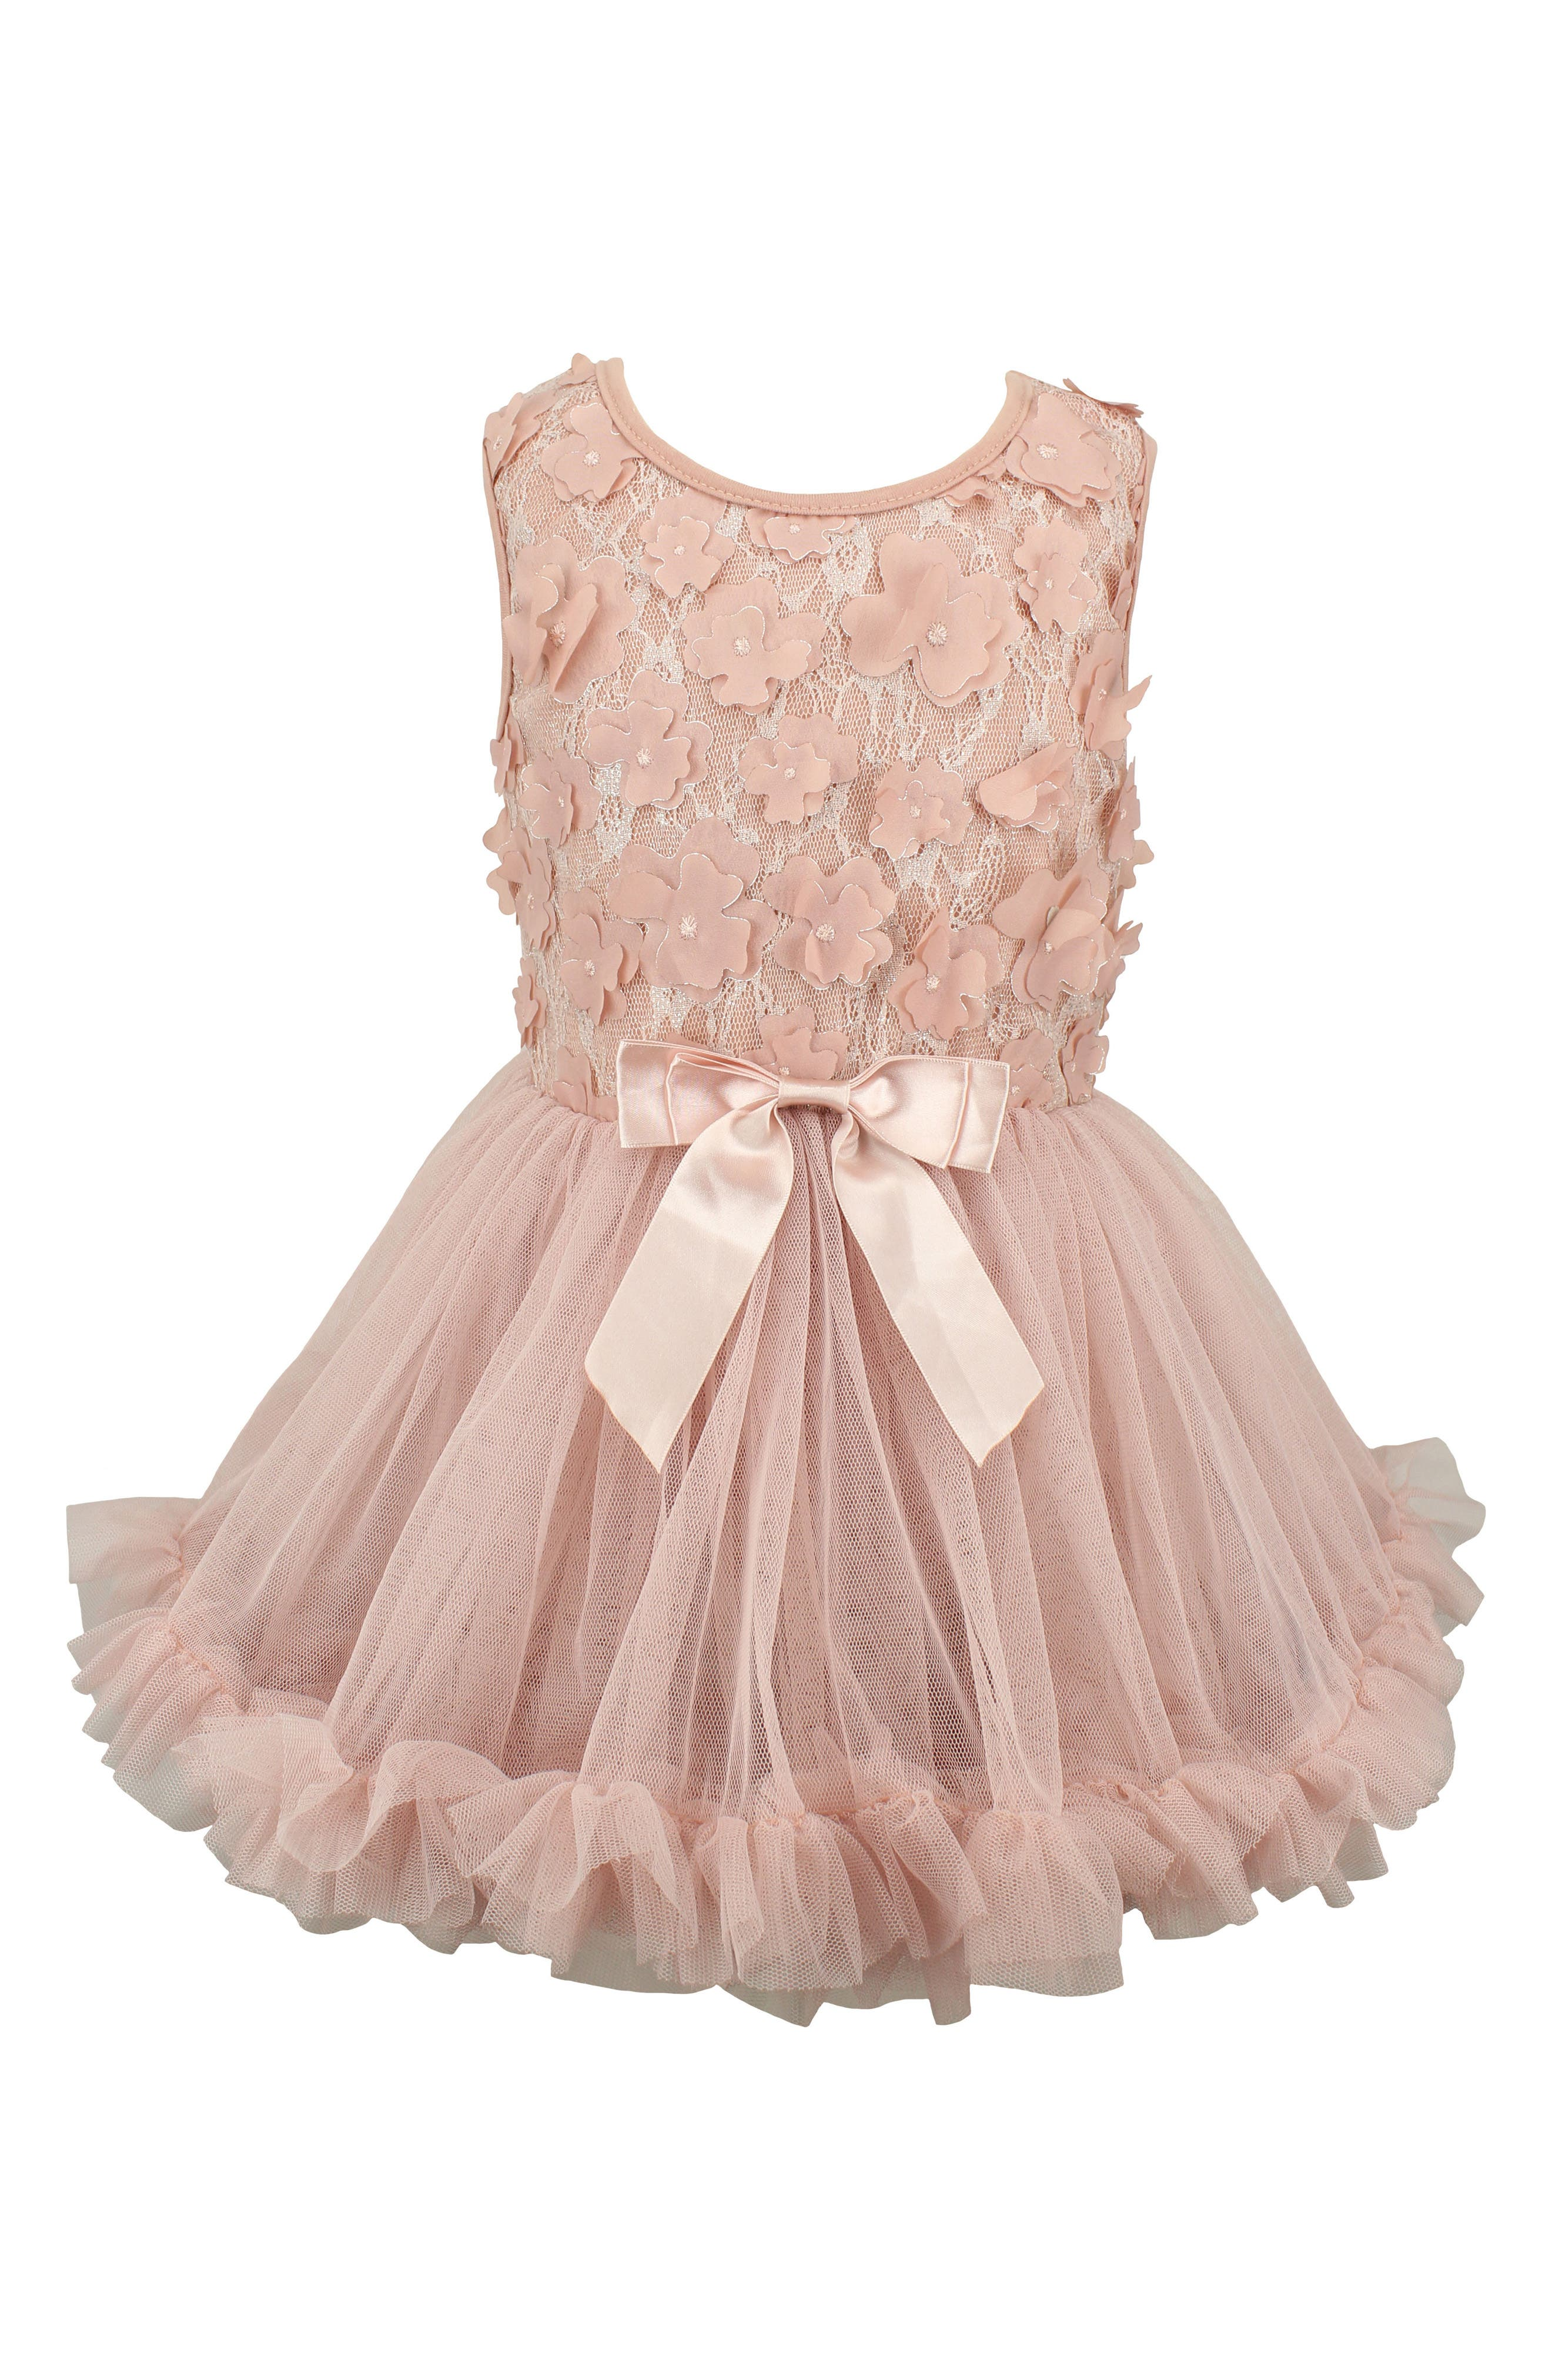 Flower Tulle Dress,                             Main thumbnail 1, color,                             DUSTY PINK